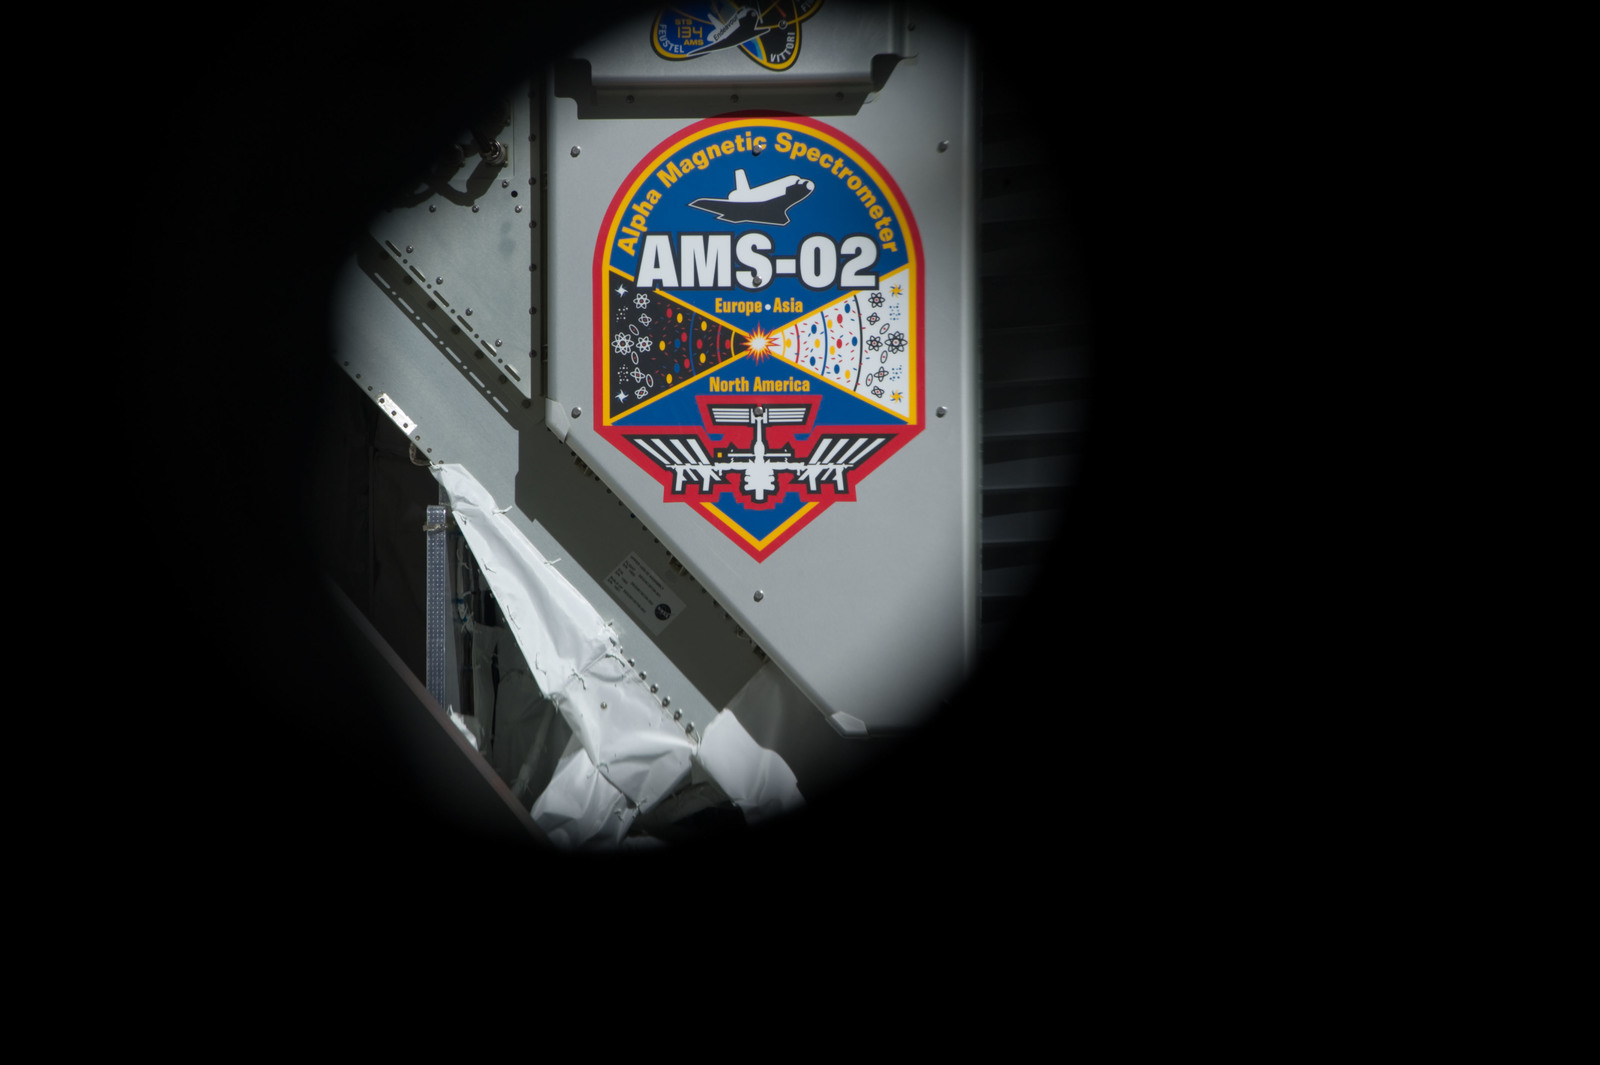 S134E007369 - STS-134 - View of AMS-2 stowed in the Endeavour Payload Bay